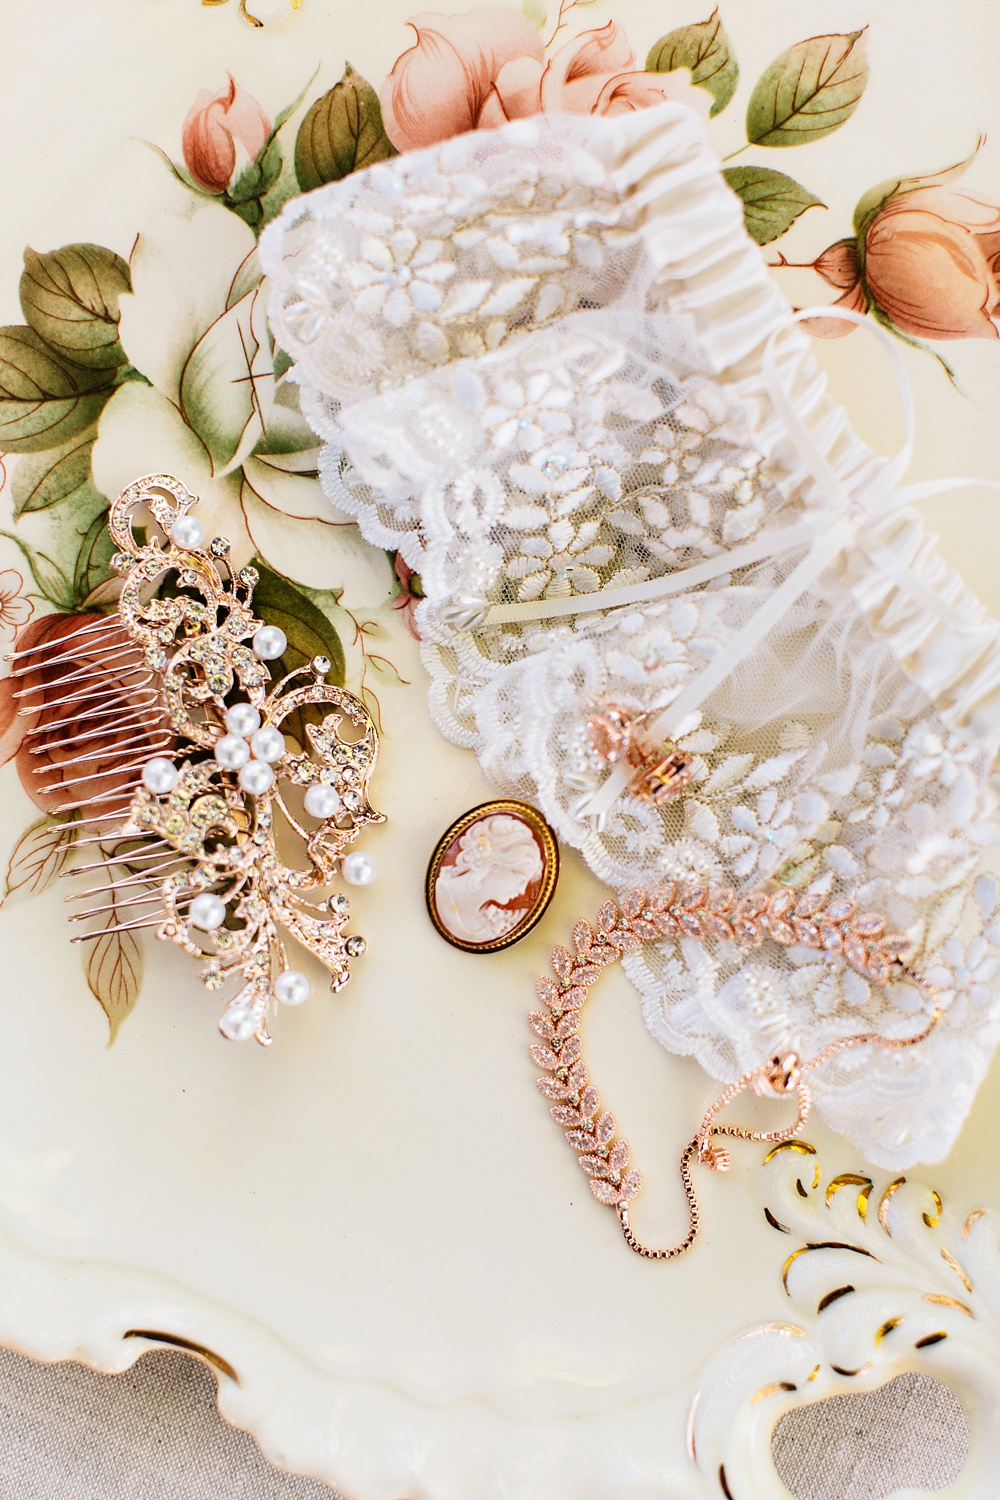 bridal details on an antique tray by rachael bowman photography